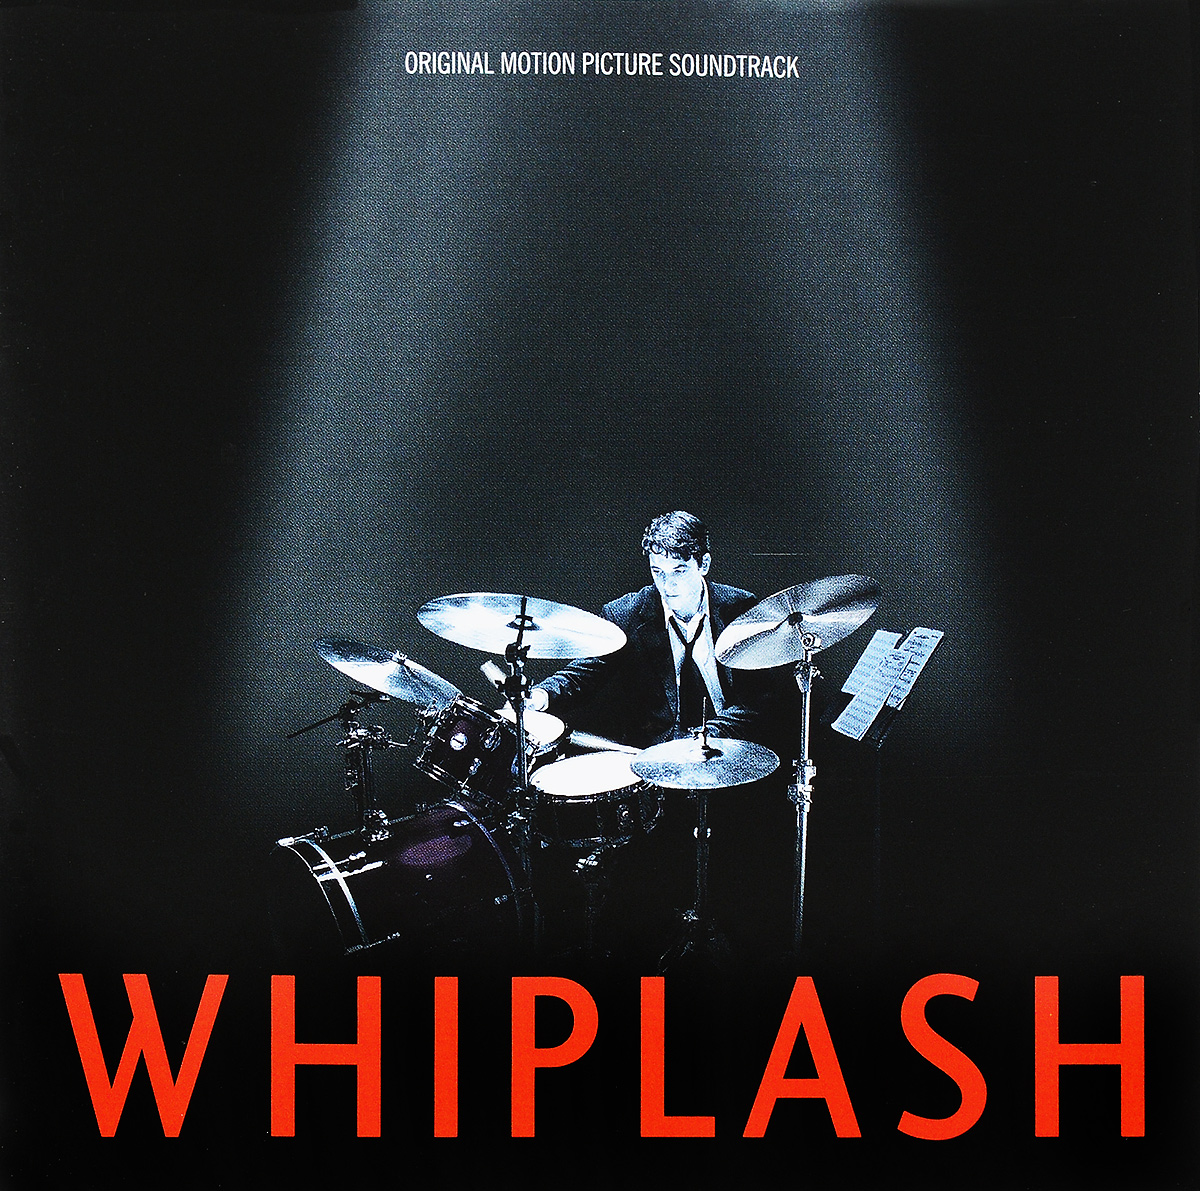 Whiplash. Original Motion Picture Soundtrack whiplash original motion picture soundtrack